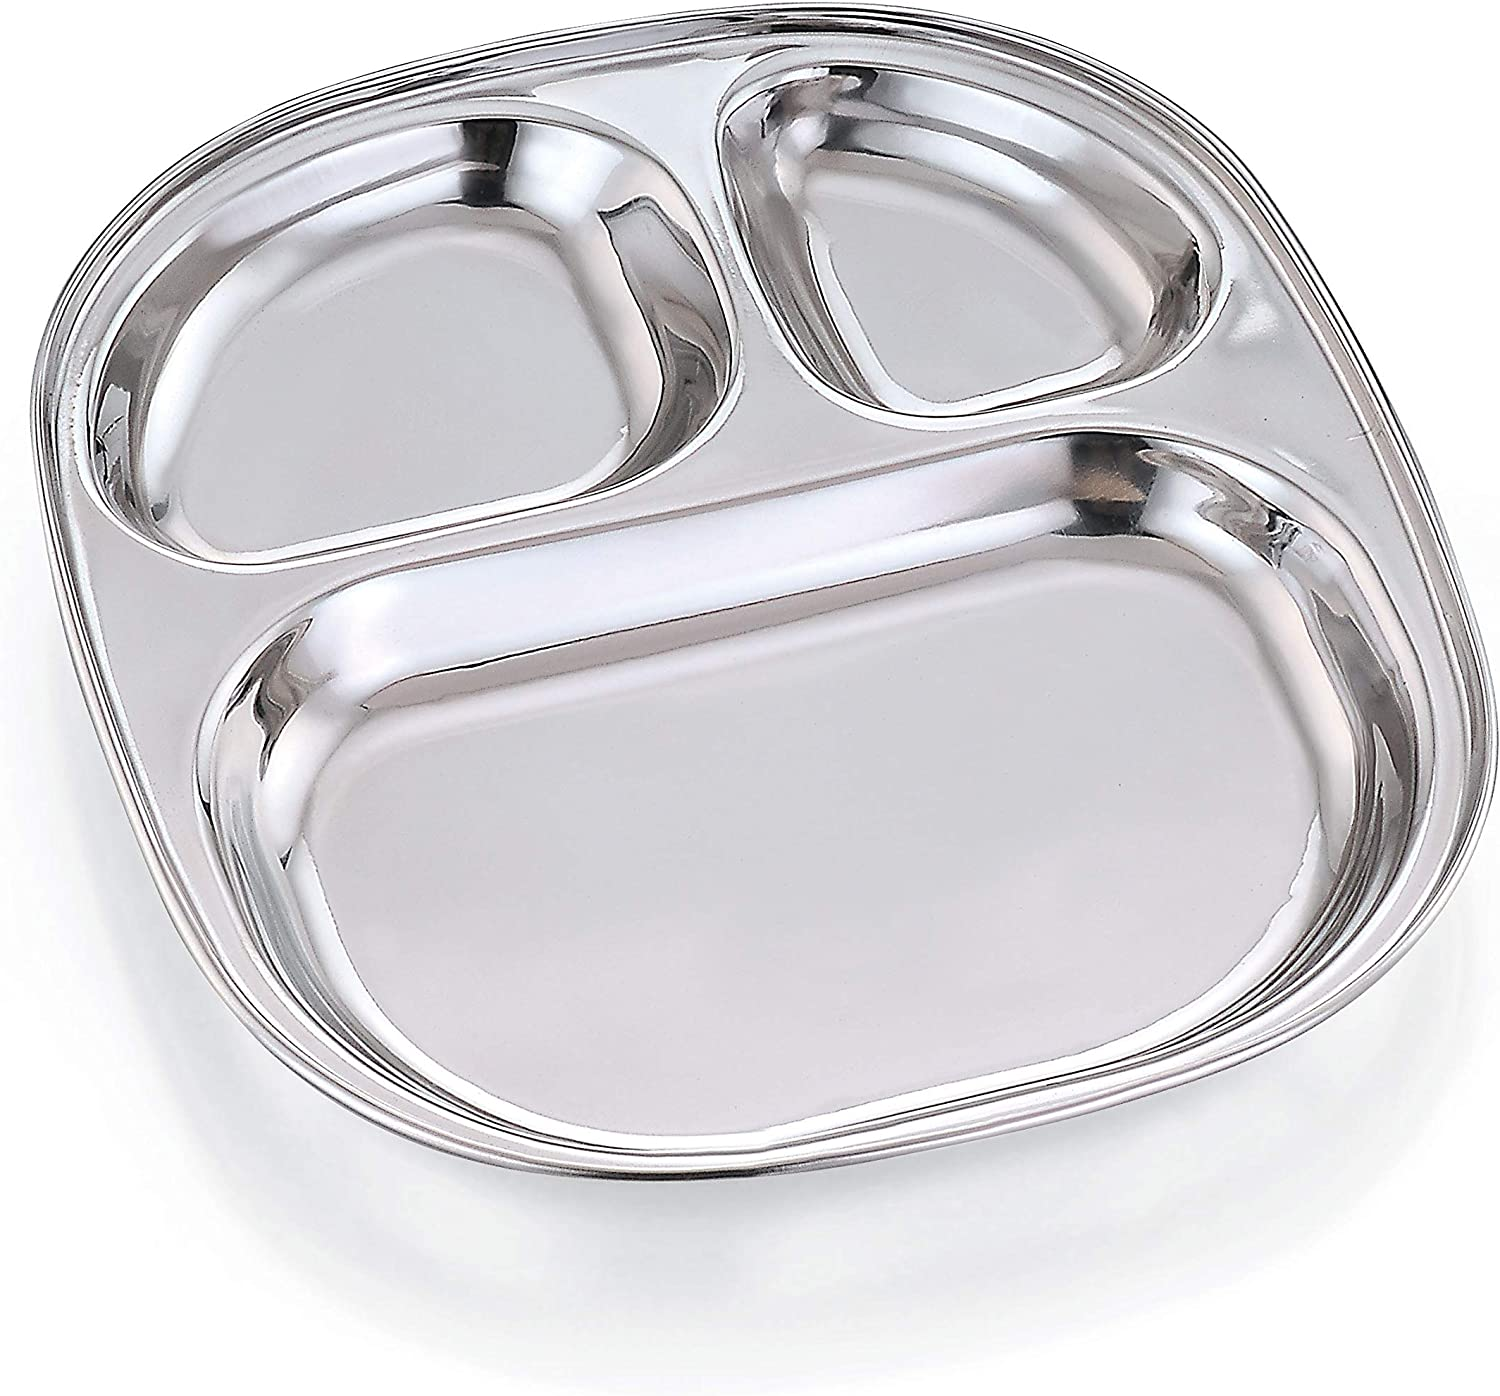 Expresso - Heavy Duty Stainless Steel Oval 3 Large special price !! Sections Plate Popular products with